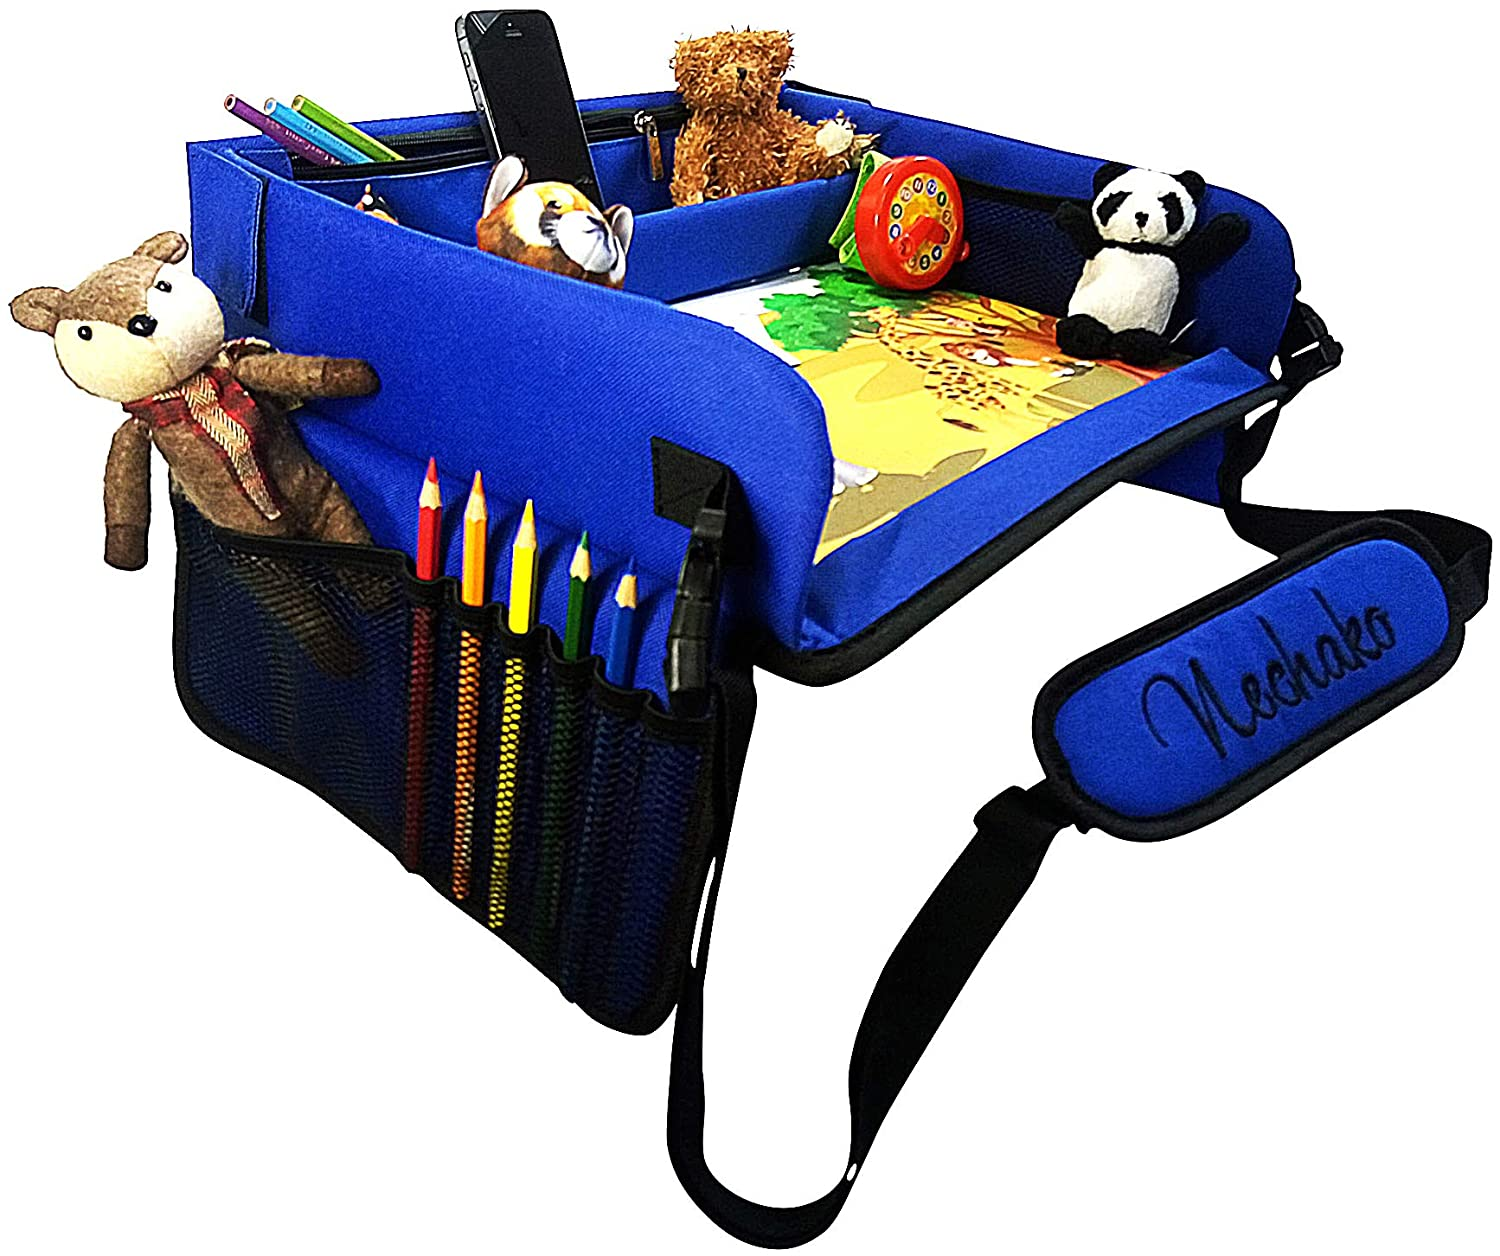 Nechako Kids Car Seat Travel Tray - Portable Activity Snack Table for a Travelling Toddler in a Carseat, Plane, Stroller - Toddlers Lap Desk Play Trays for Toys, Tablet, Creative Art and Activities